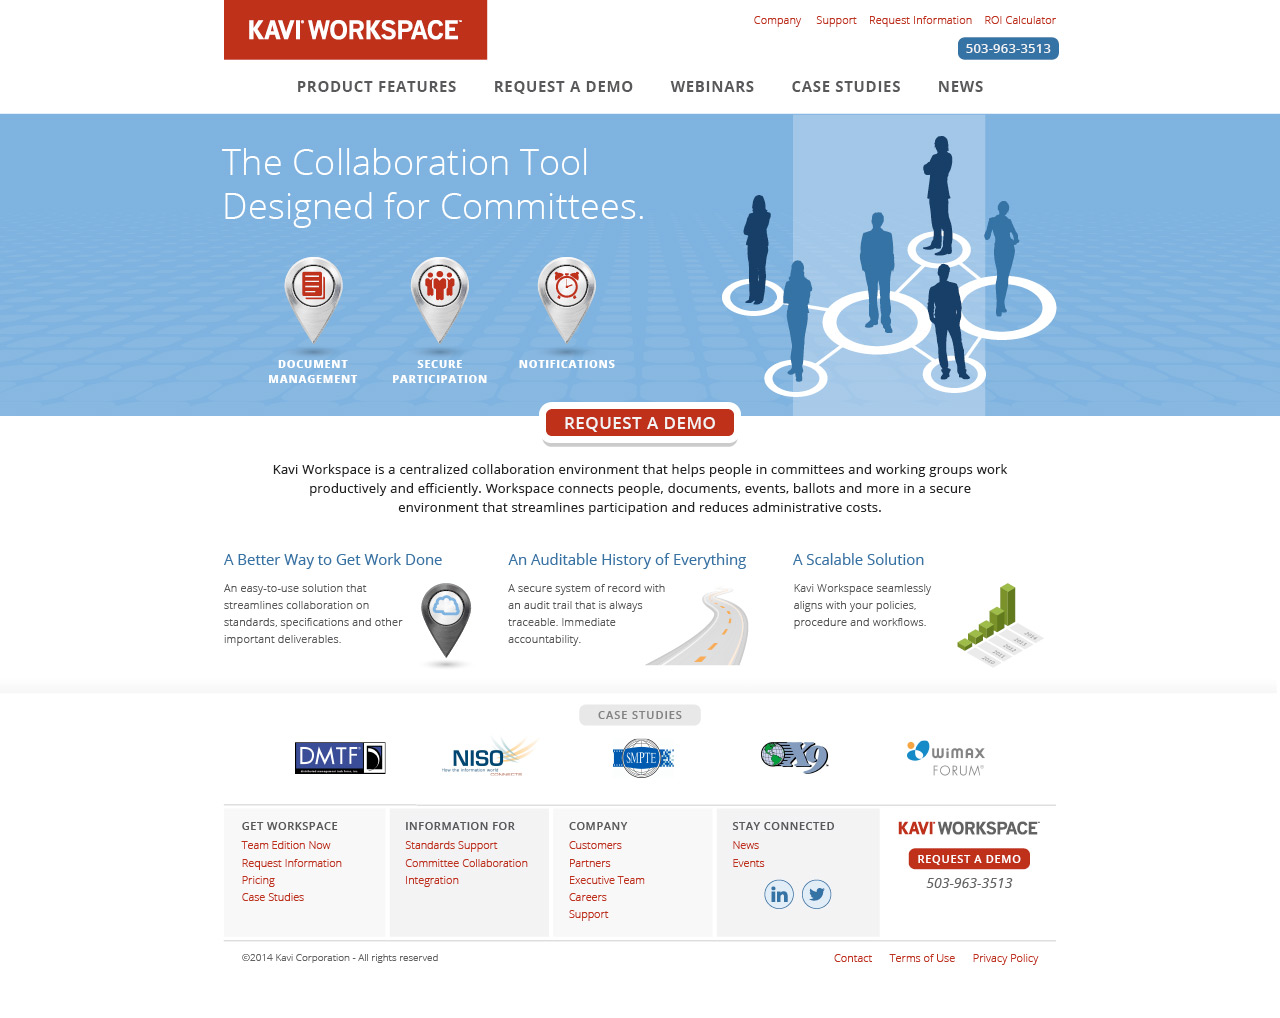 Cosmonaut - Kavi Corporation Web Design